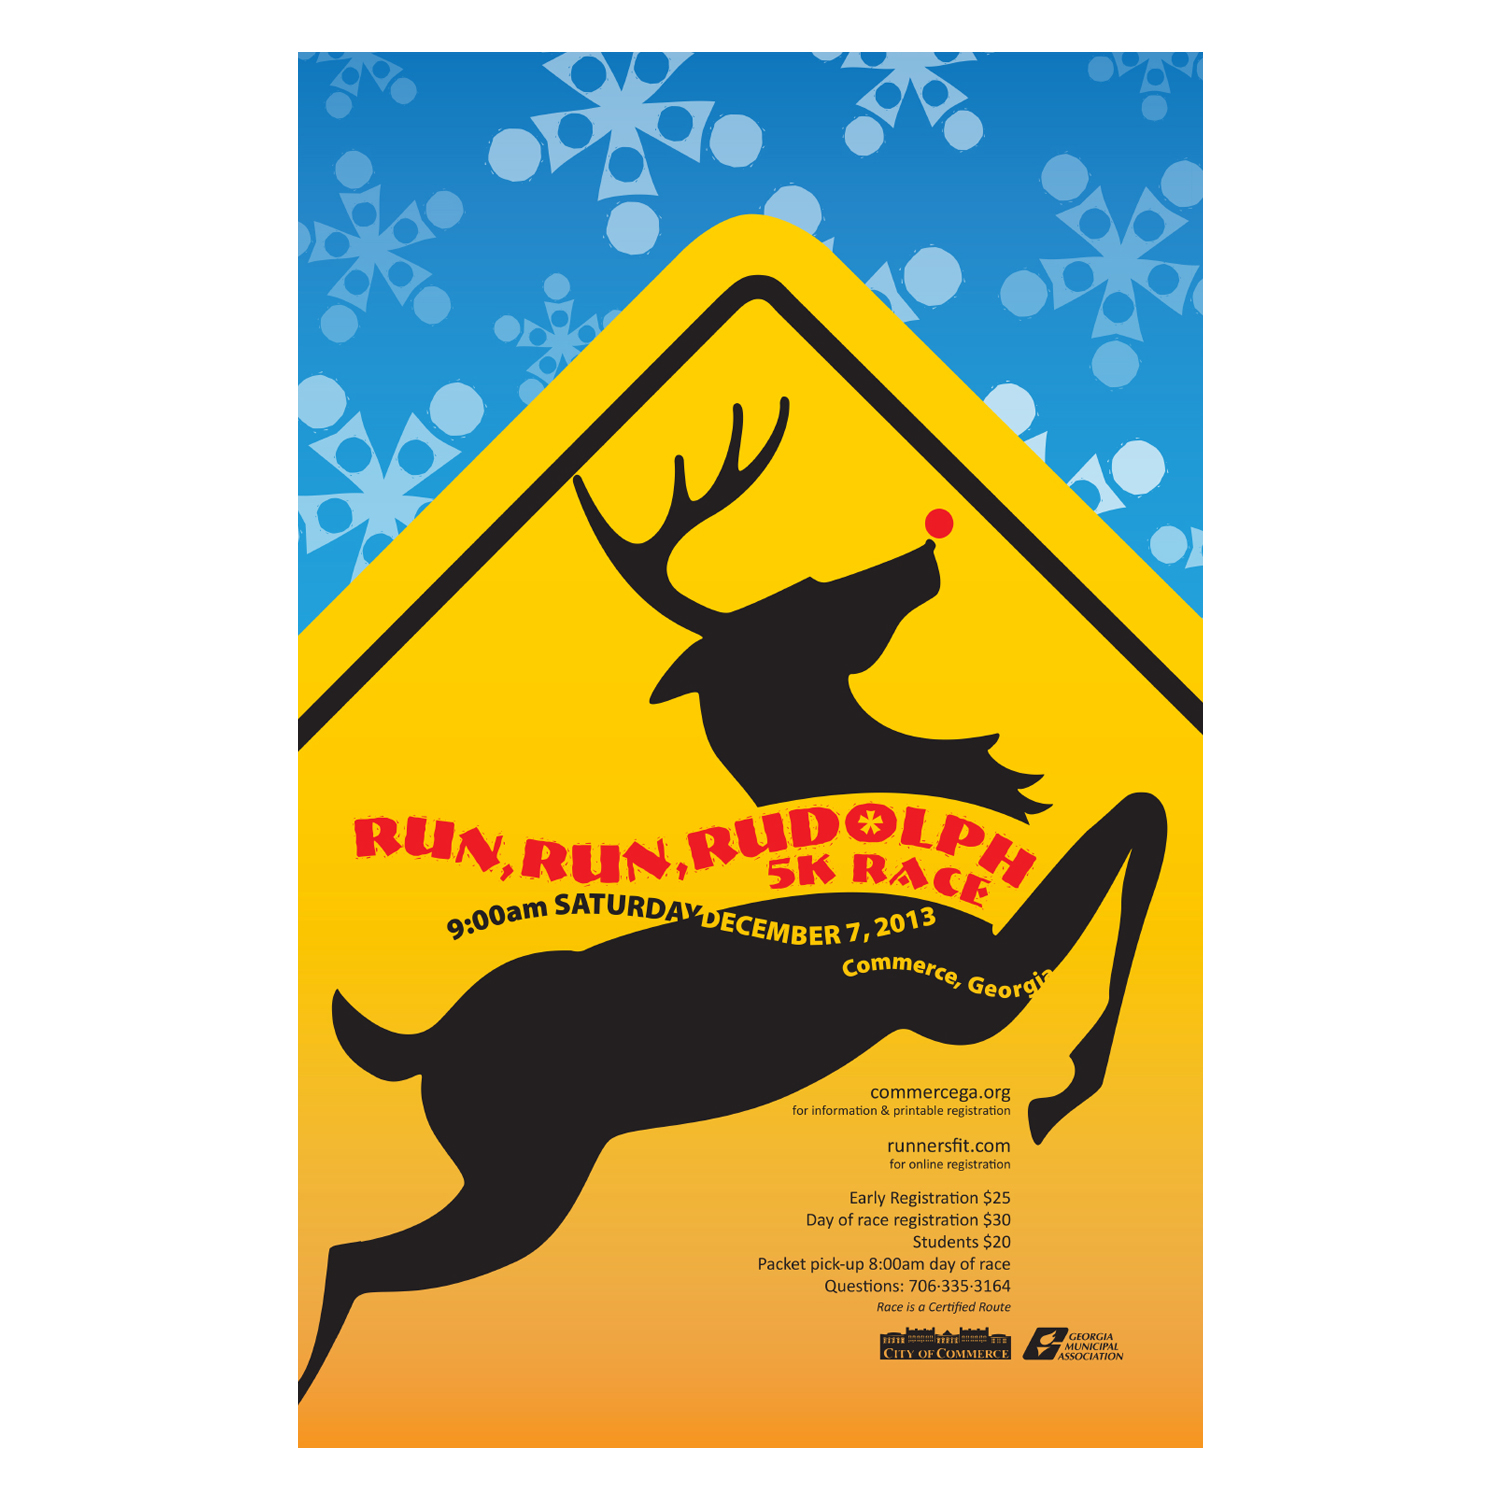 PRINT DESIGN - City of Commerce Run Run Rudolph 5K | poster - ©UnParalleled, LLC dba UP-Ideas / Roger Sawhill / Mark Braught - Atlanta, Georgia | Lawrenceville, Georgia | Commerce, Georgia